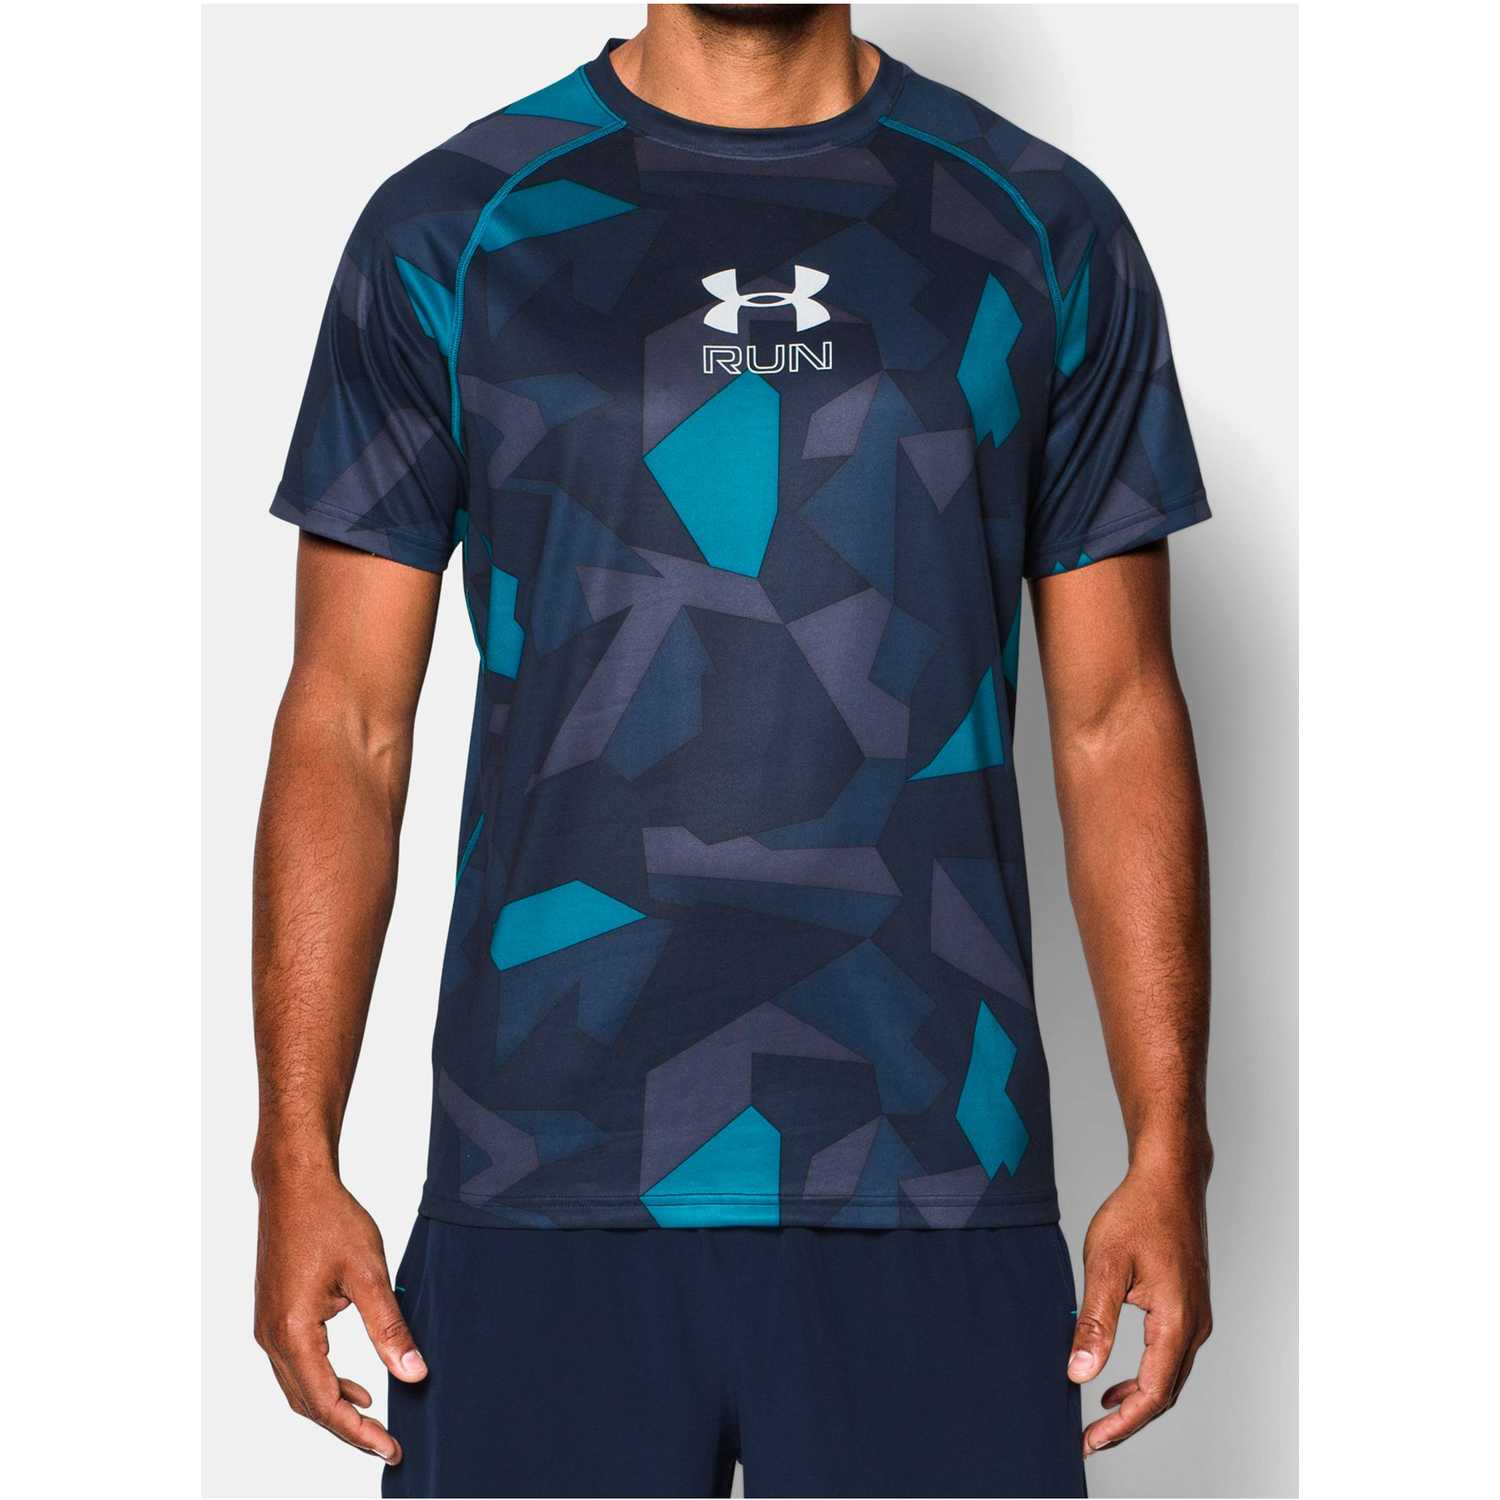 b056d68aadba2 Camiseta de Hombre Under Armour Acero   Turquesa ua run graphic ss ...